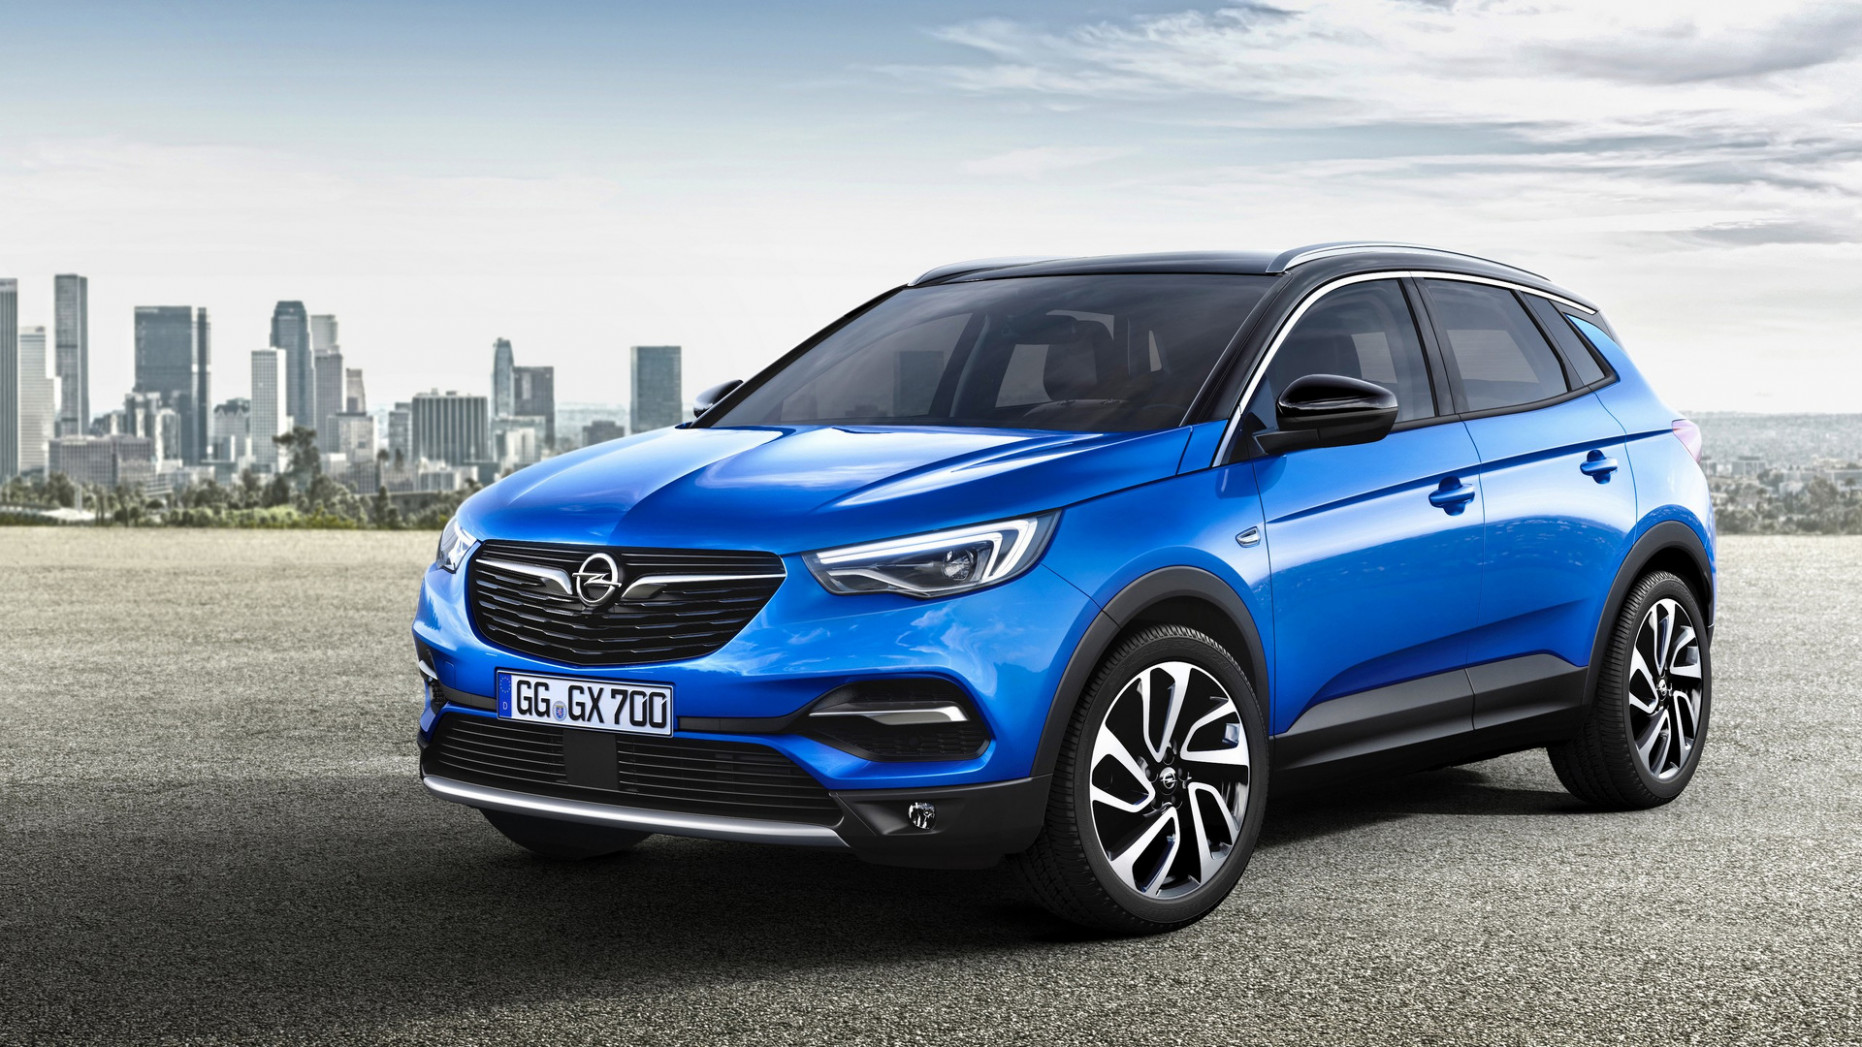 Opel Grandland X Starts At €10,10, Cheaper Than Peugeot 10 - 2020 opel jip